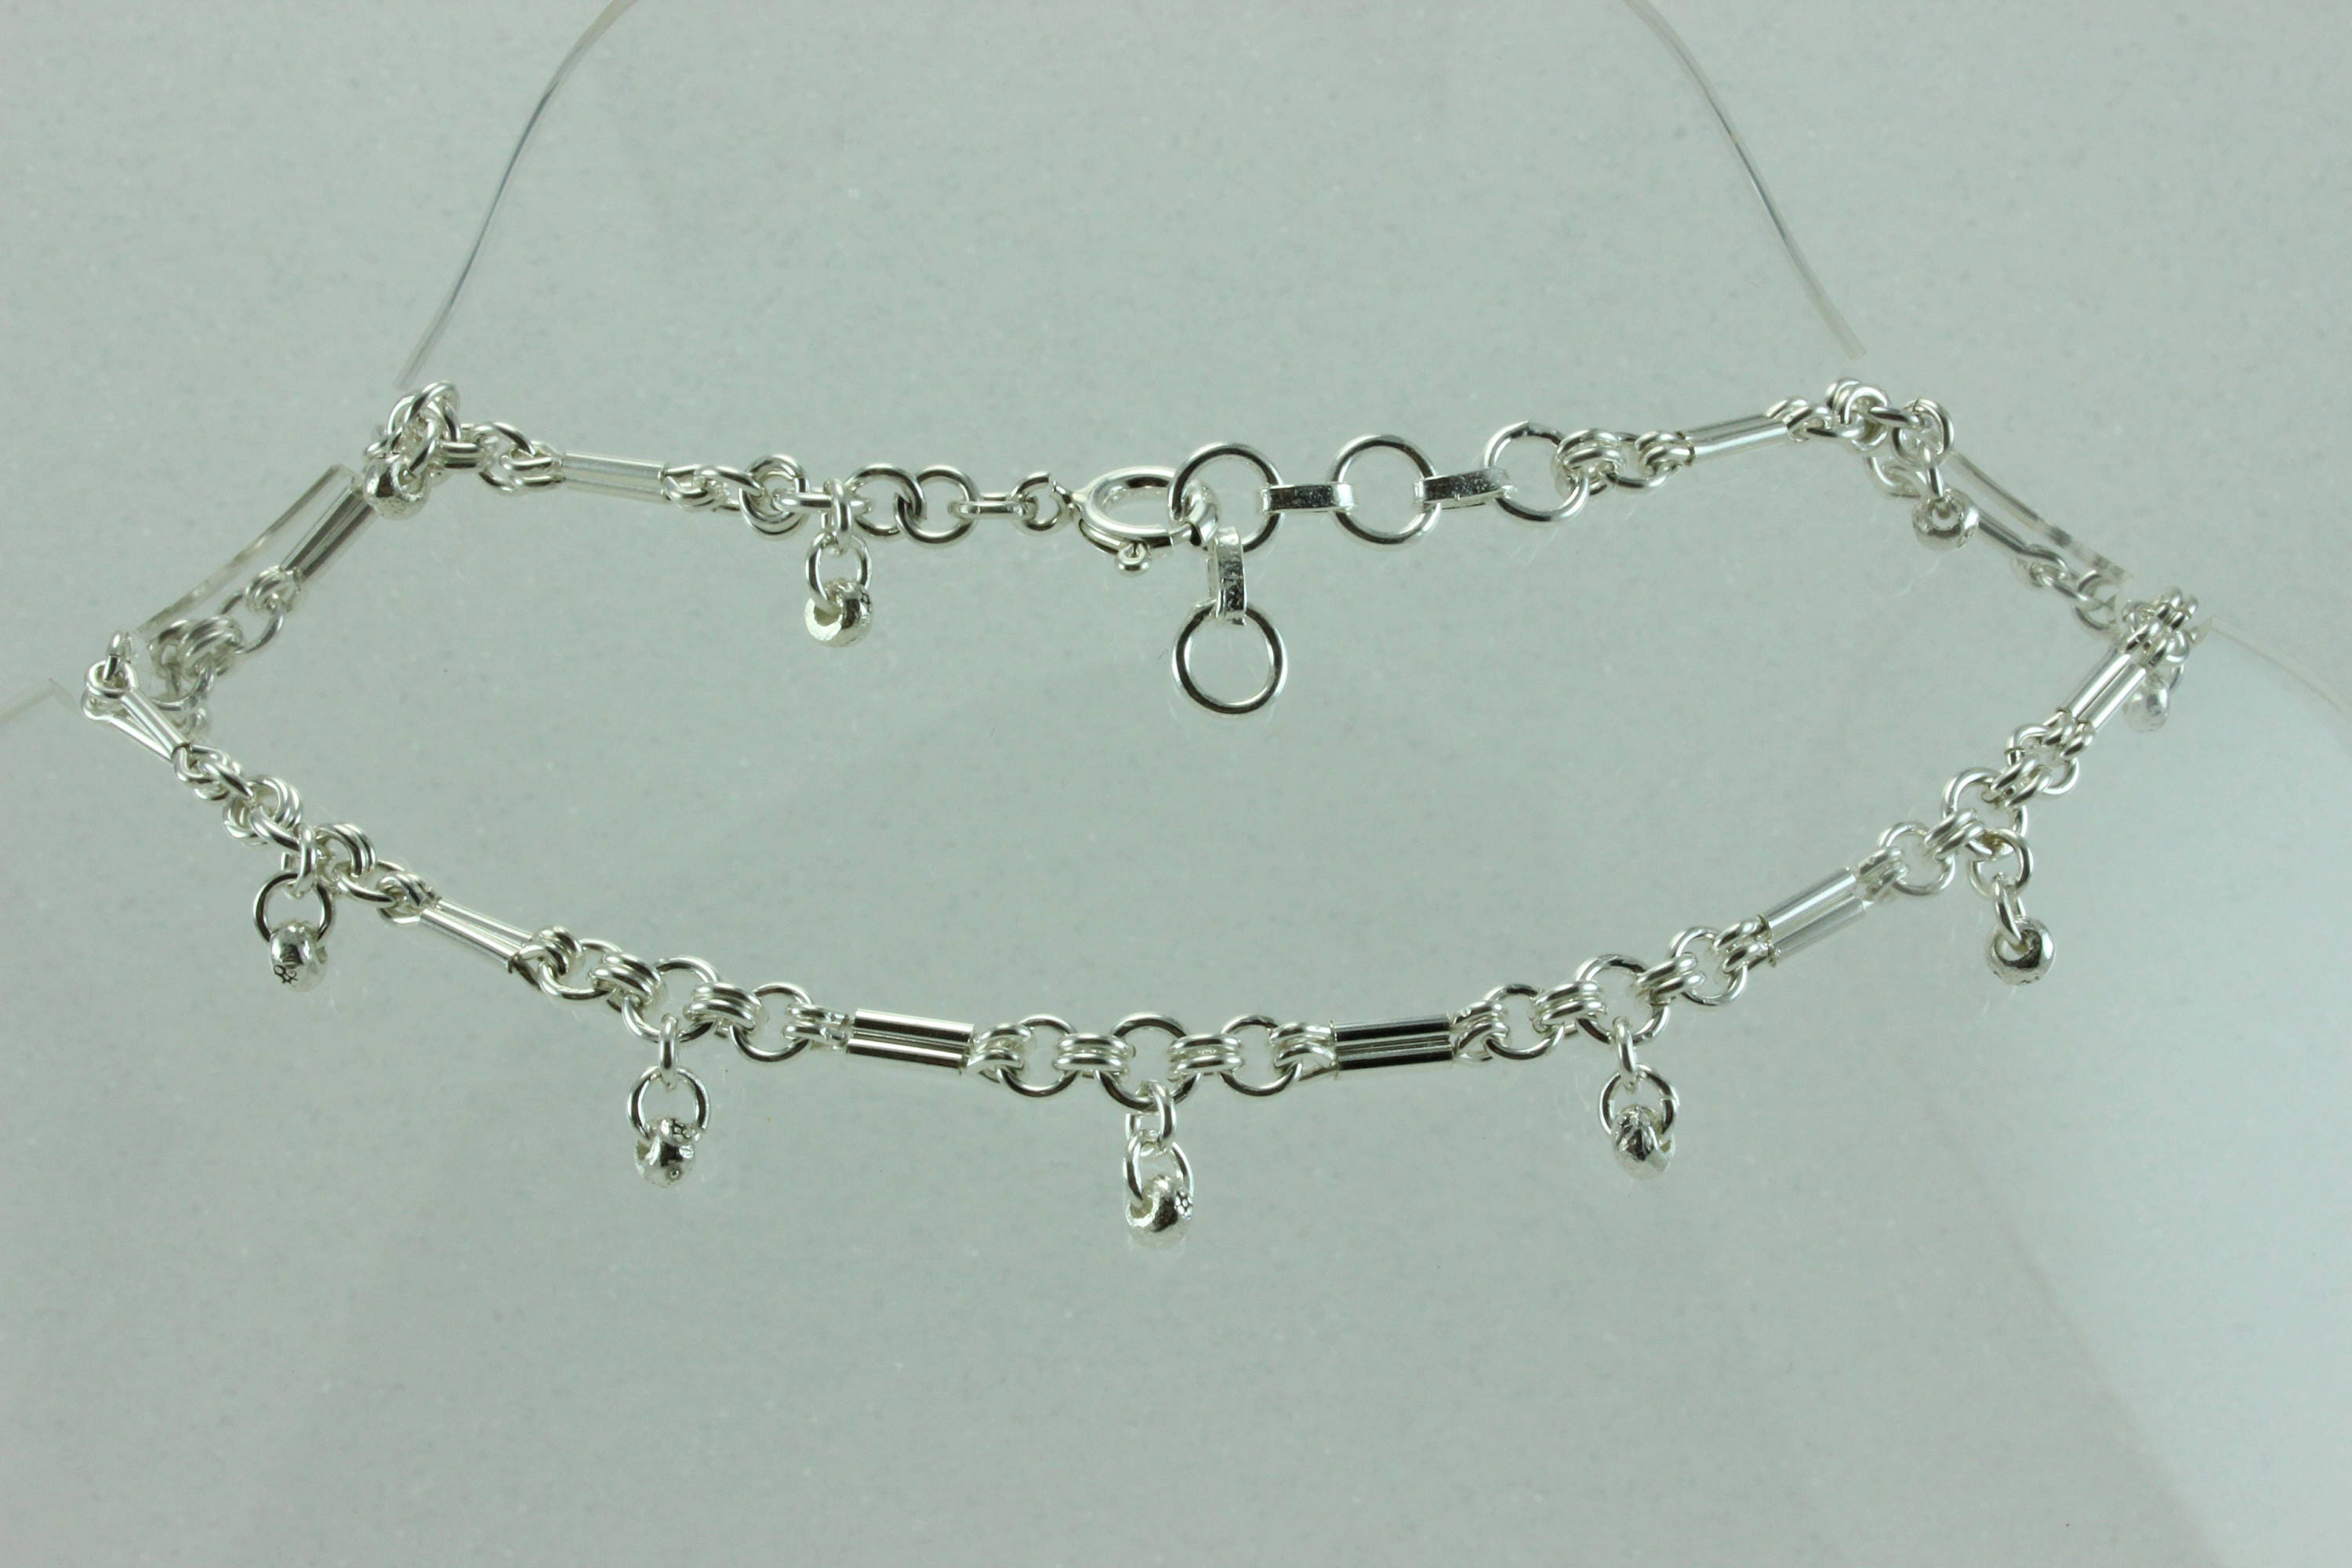 popular zirconia anklets brilliant crafted cubic clr anklet bracelet and inlays sterling classic hand with expert products this chain ankle silver is adorned a bracelets ca link heart by in polished shaped clear romantic designed details